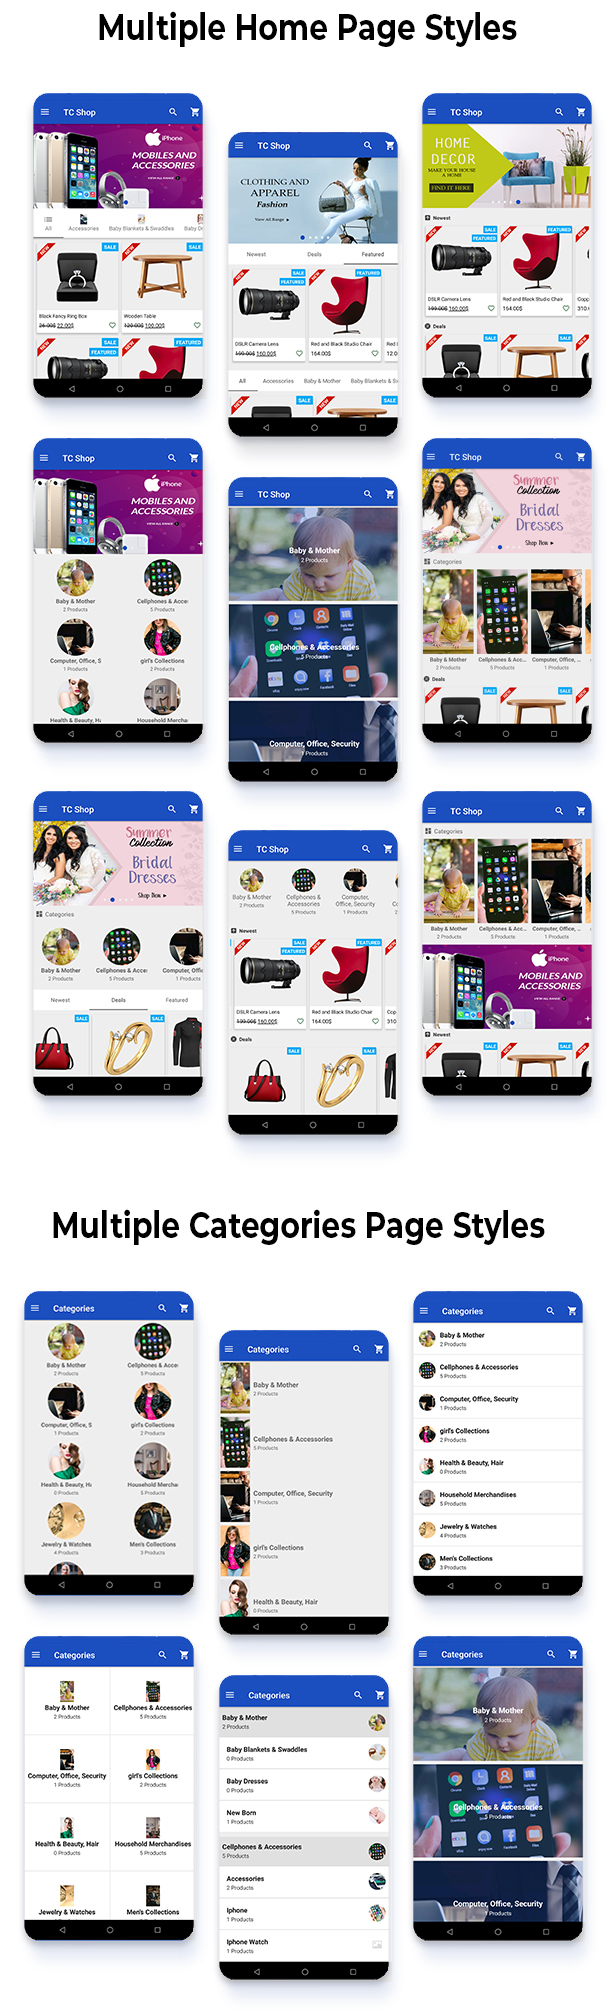 Android Woocommerce - Universal Native Android Ecommerce / Store Full Mobile Application - 7